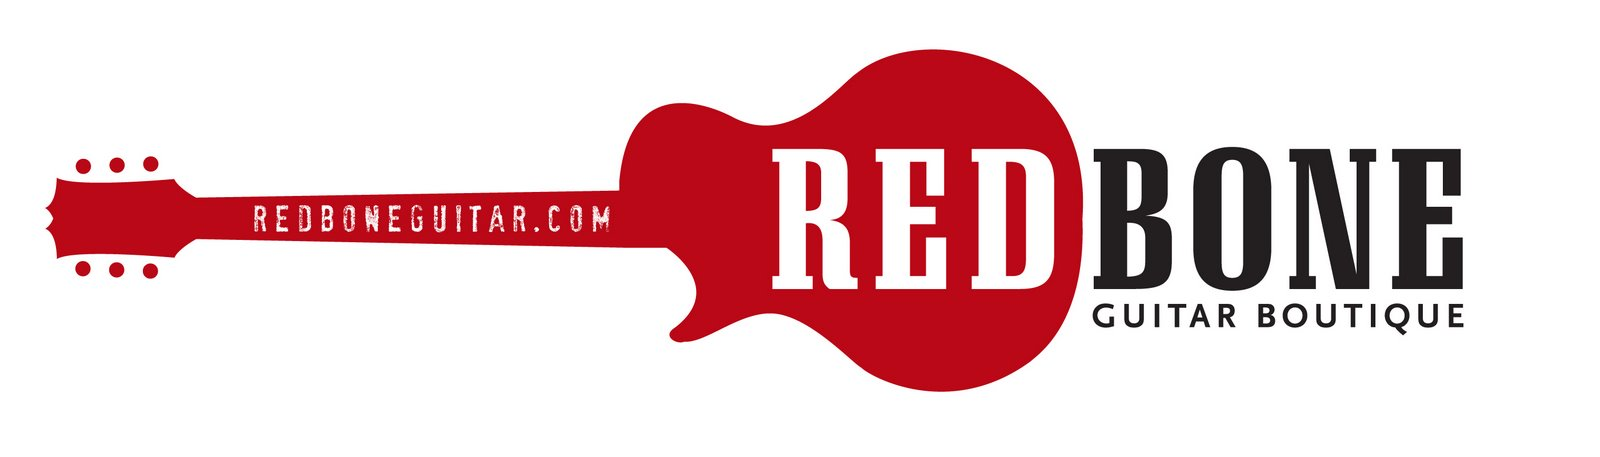 Redbone Guitar Boutique